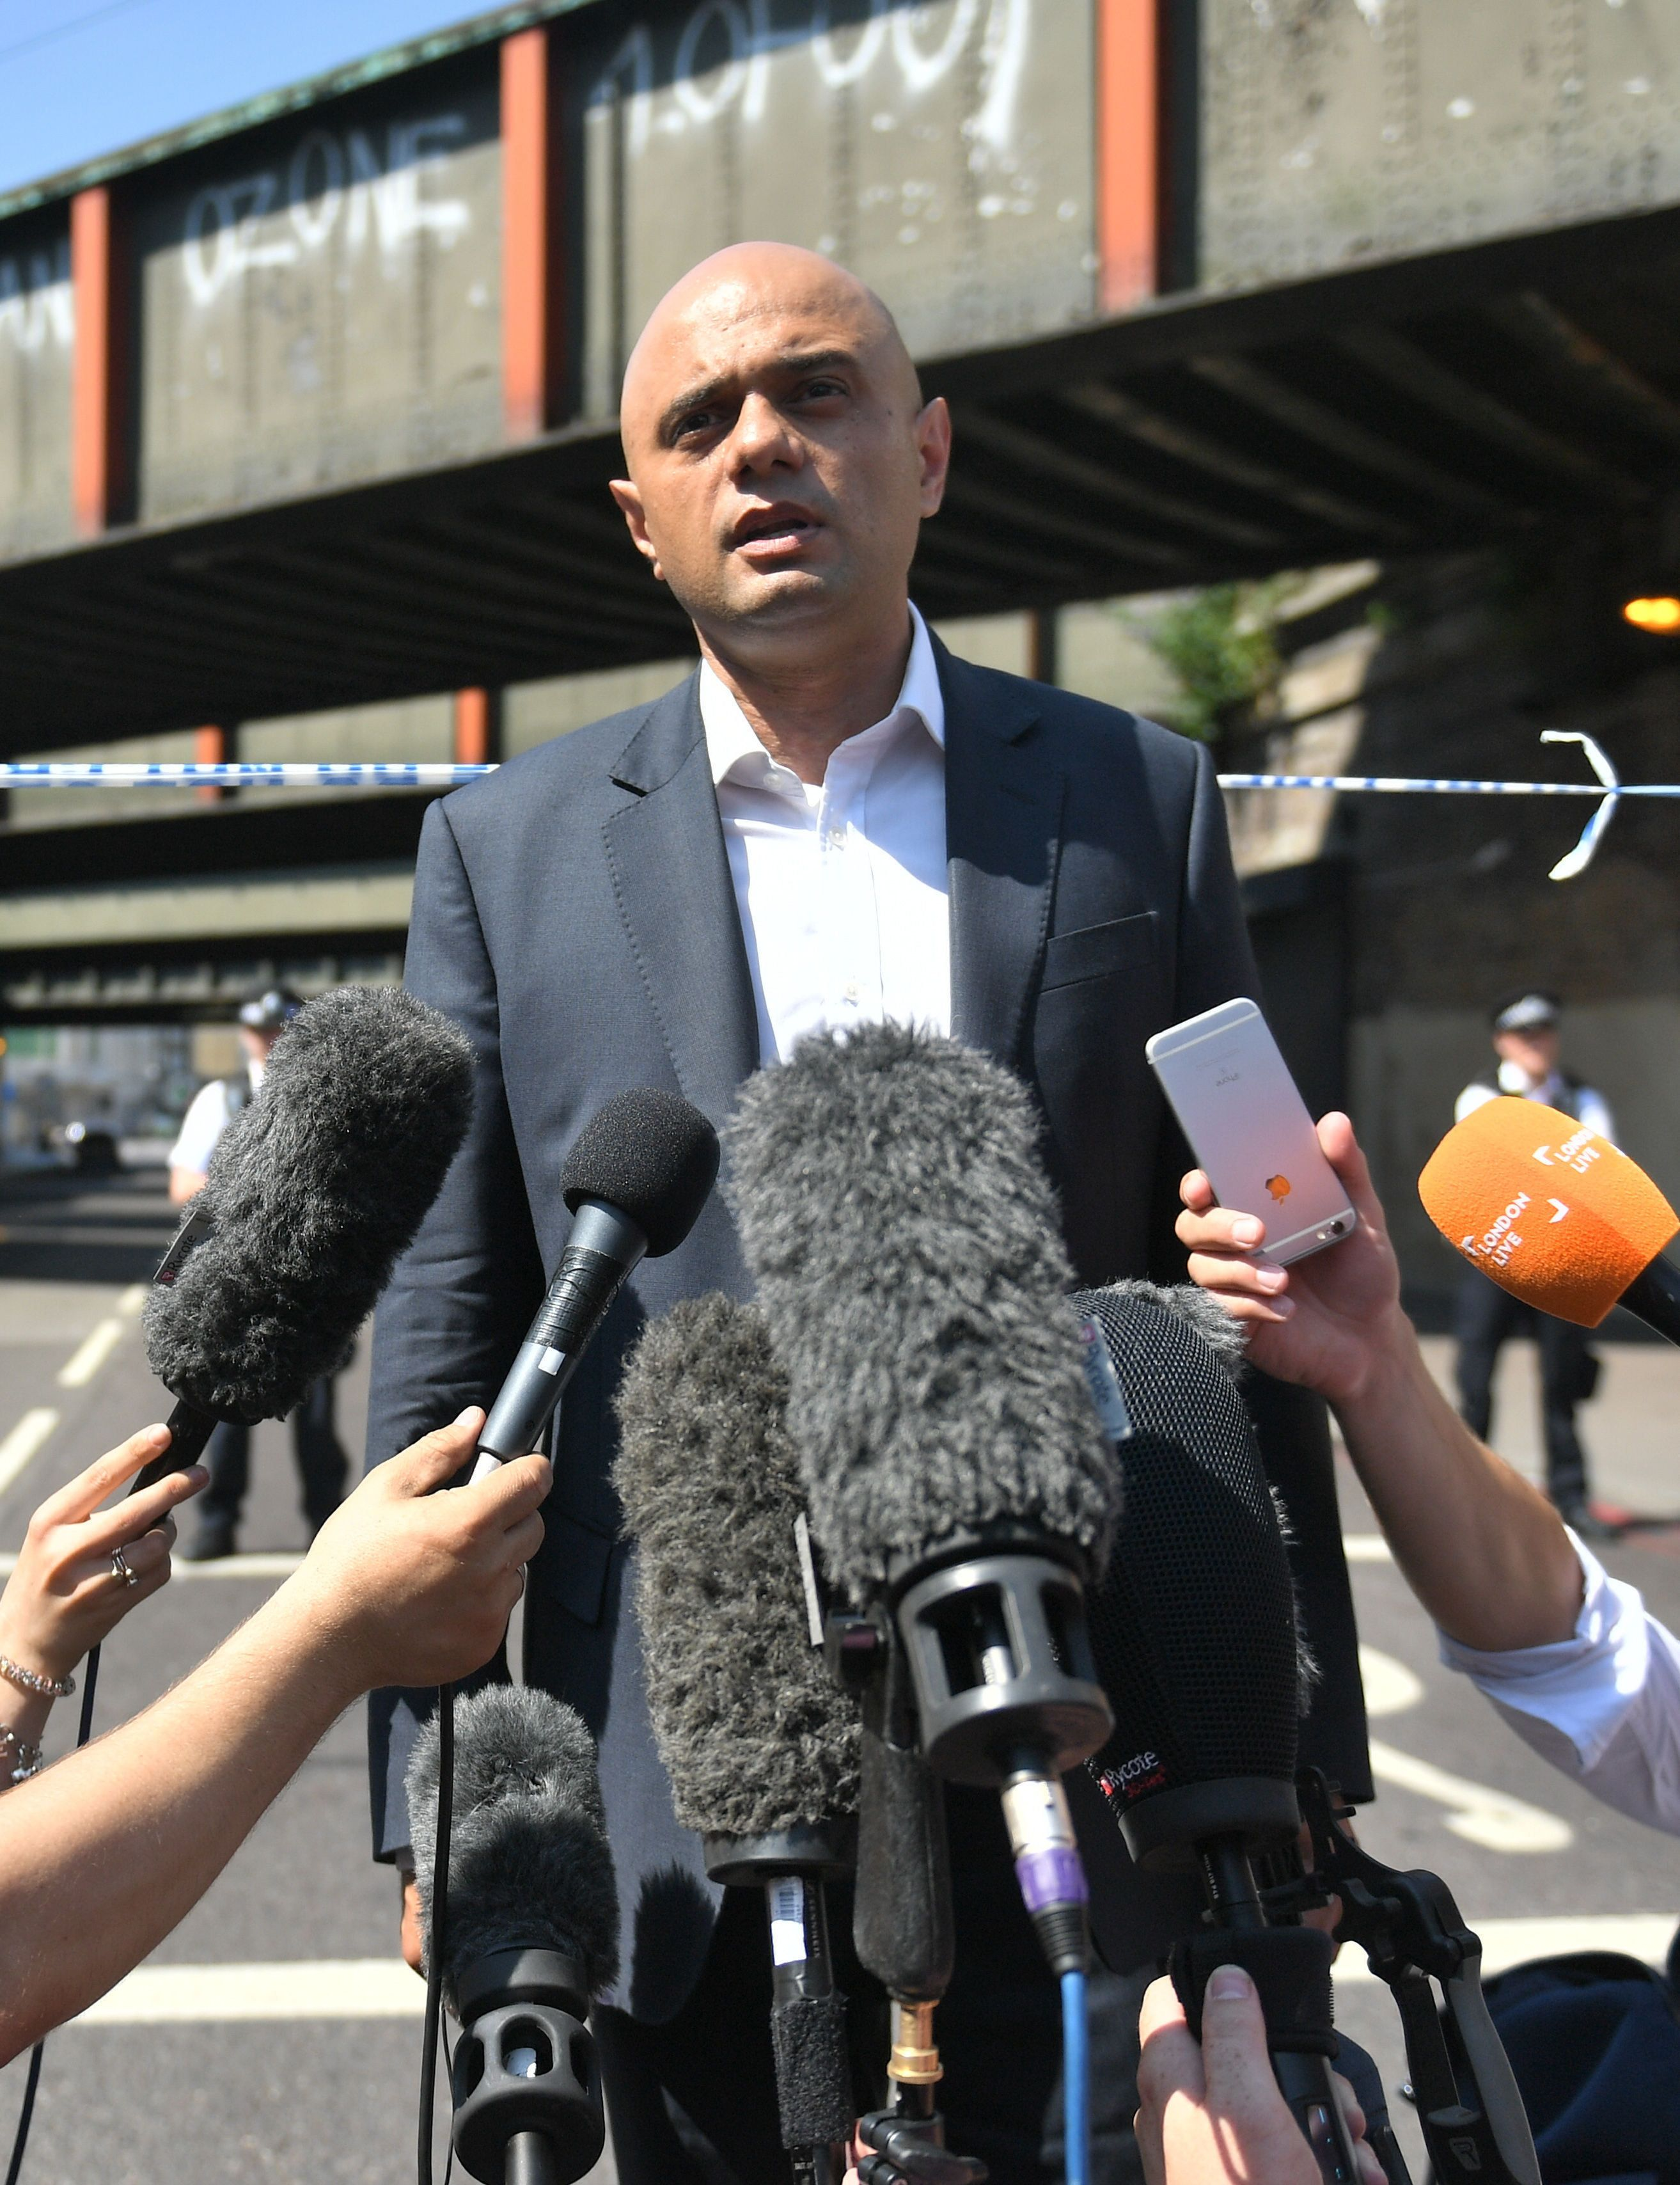 Communities Secretary Sajid Javid ignored a letter about Grenfell